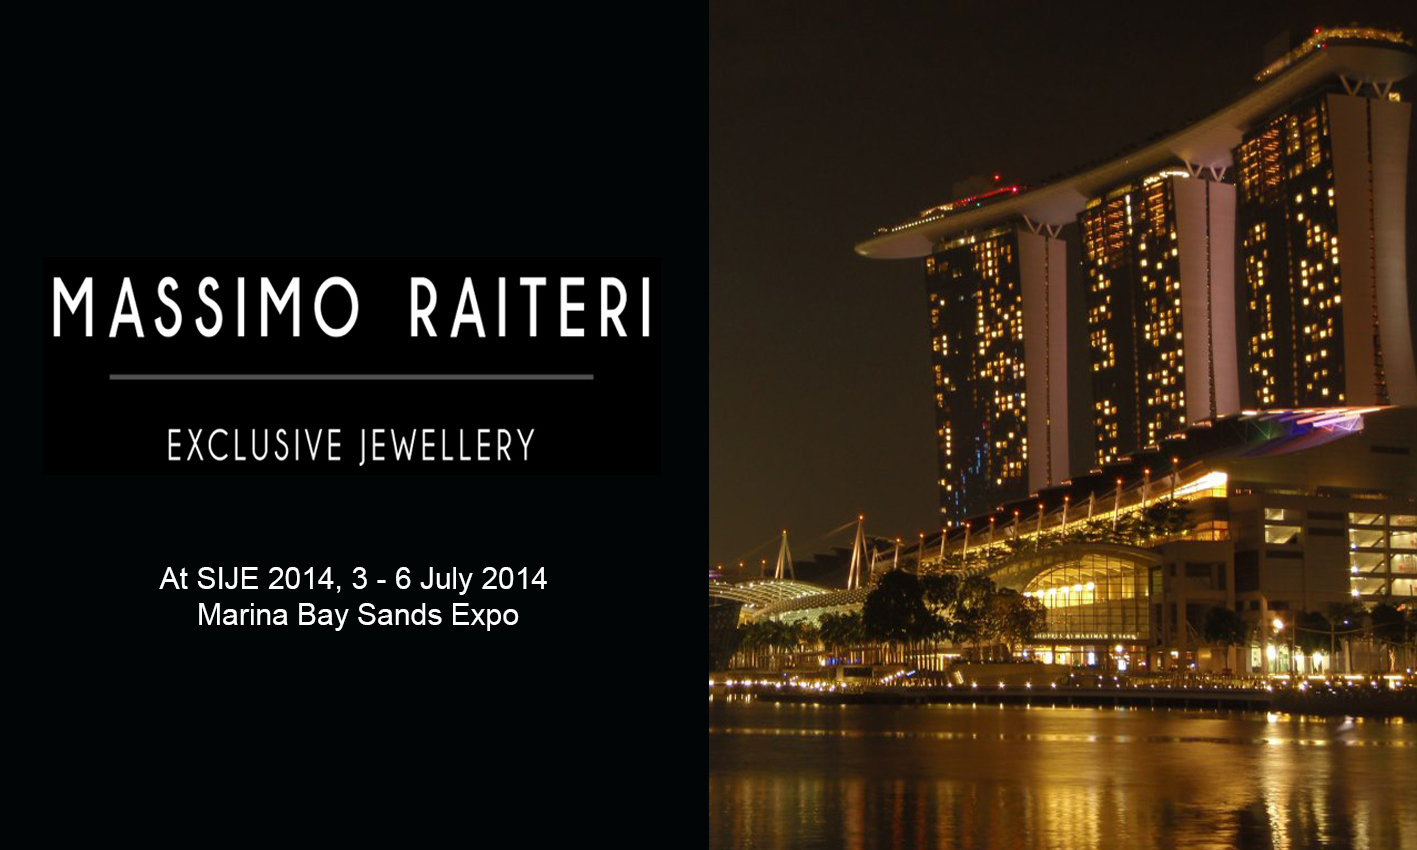 MASSIMO RAITERI EXHIBITS AT SINGAPORE INTERNATIONAL JEWELRY EXPO 2014